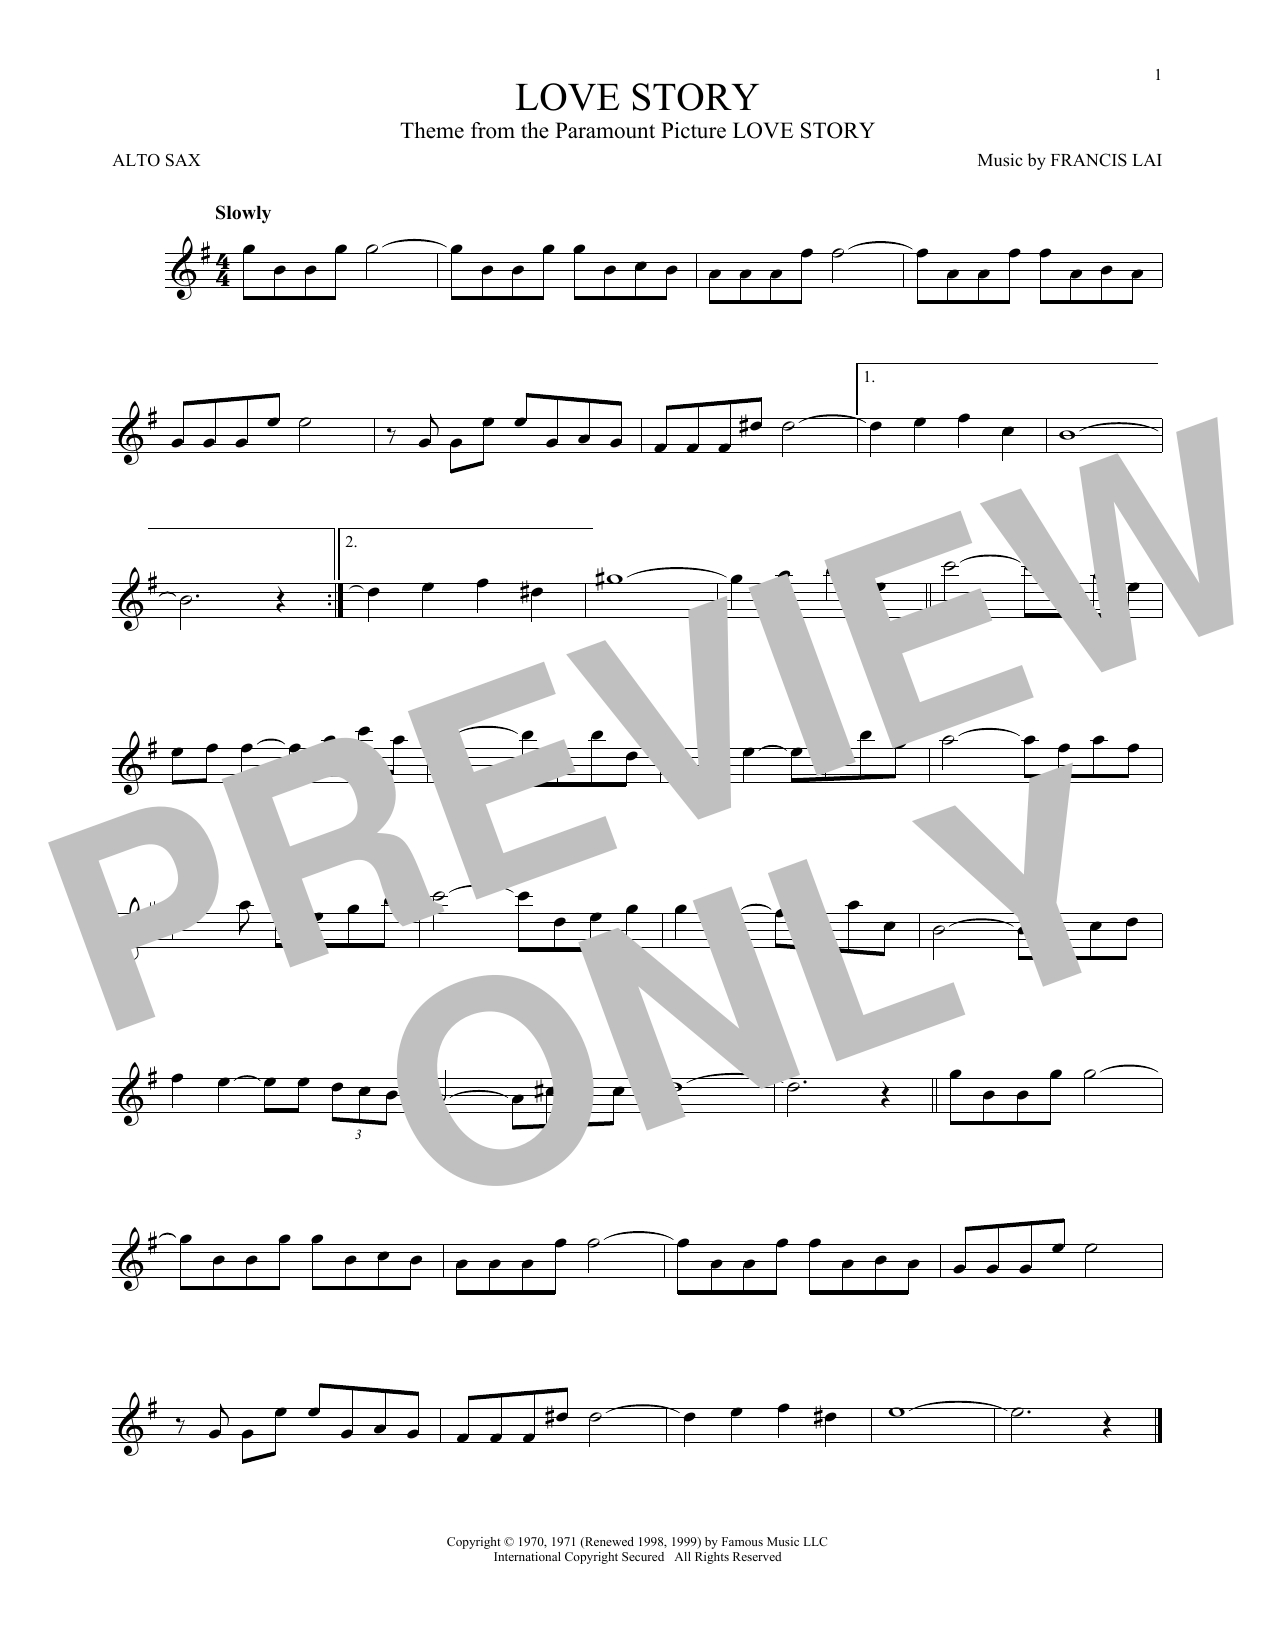 Love Story Chords Francis Lai Love Story Sheet Music Notes Chords Download Printable Alto Saxophone Sku 168786